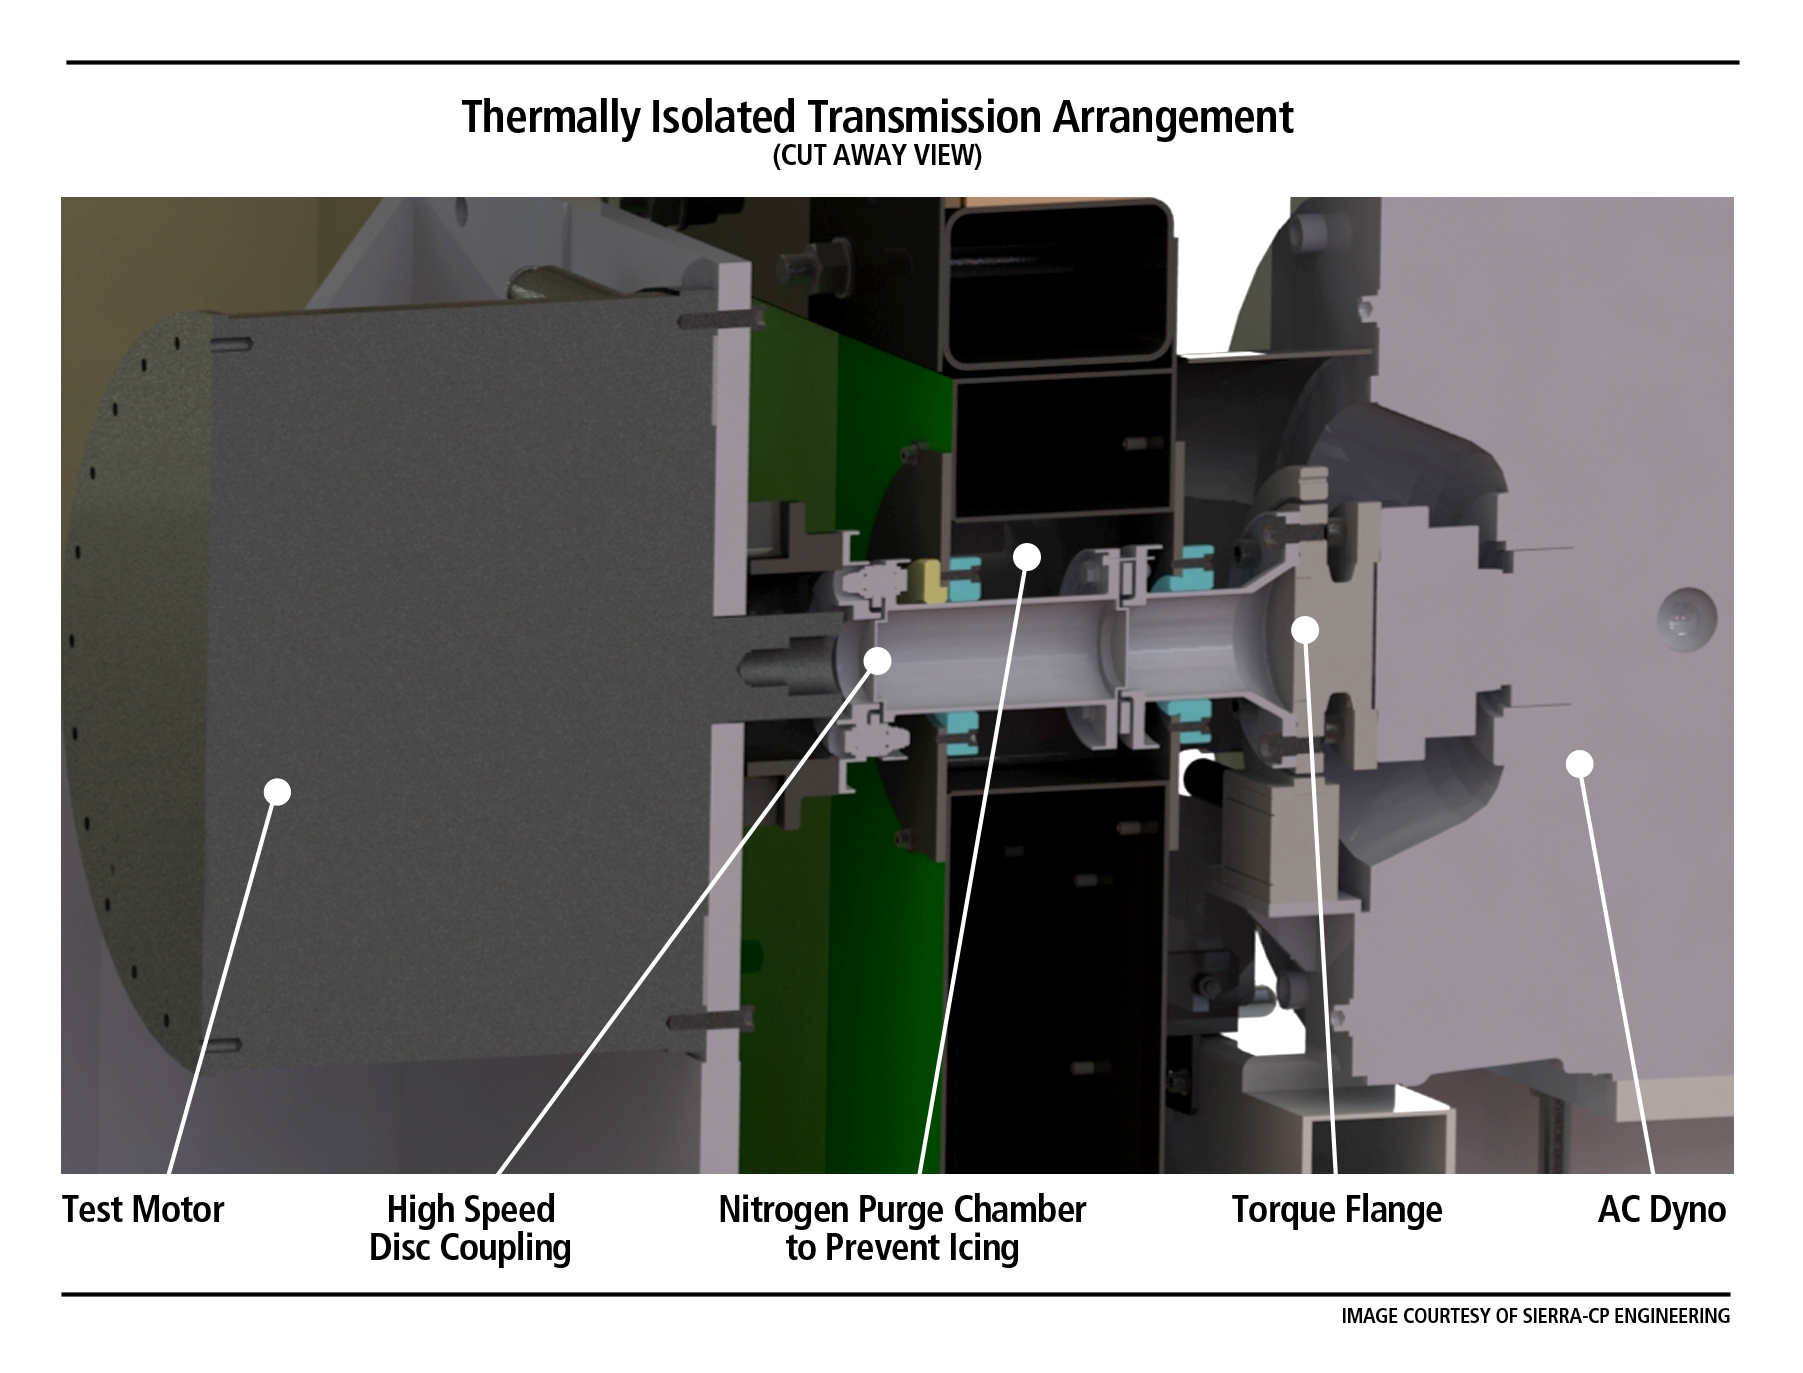 Cut away view of Thermally Isolated Transmission Arrangement